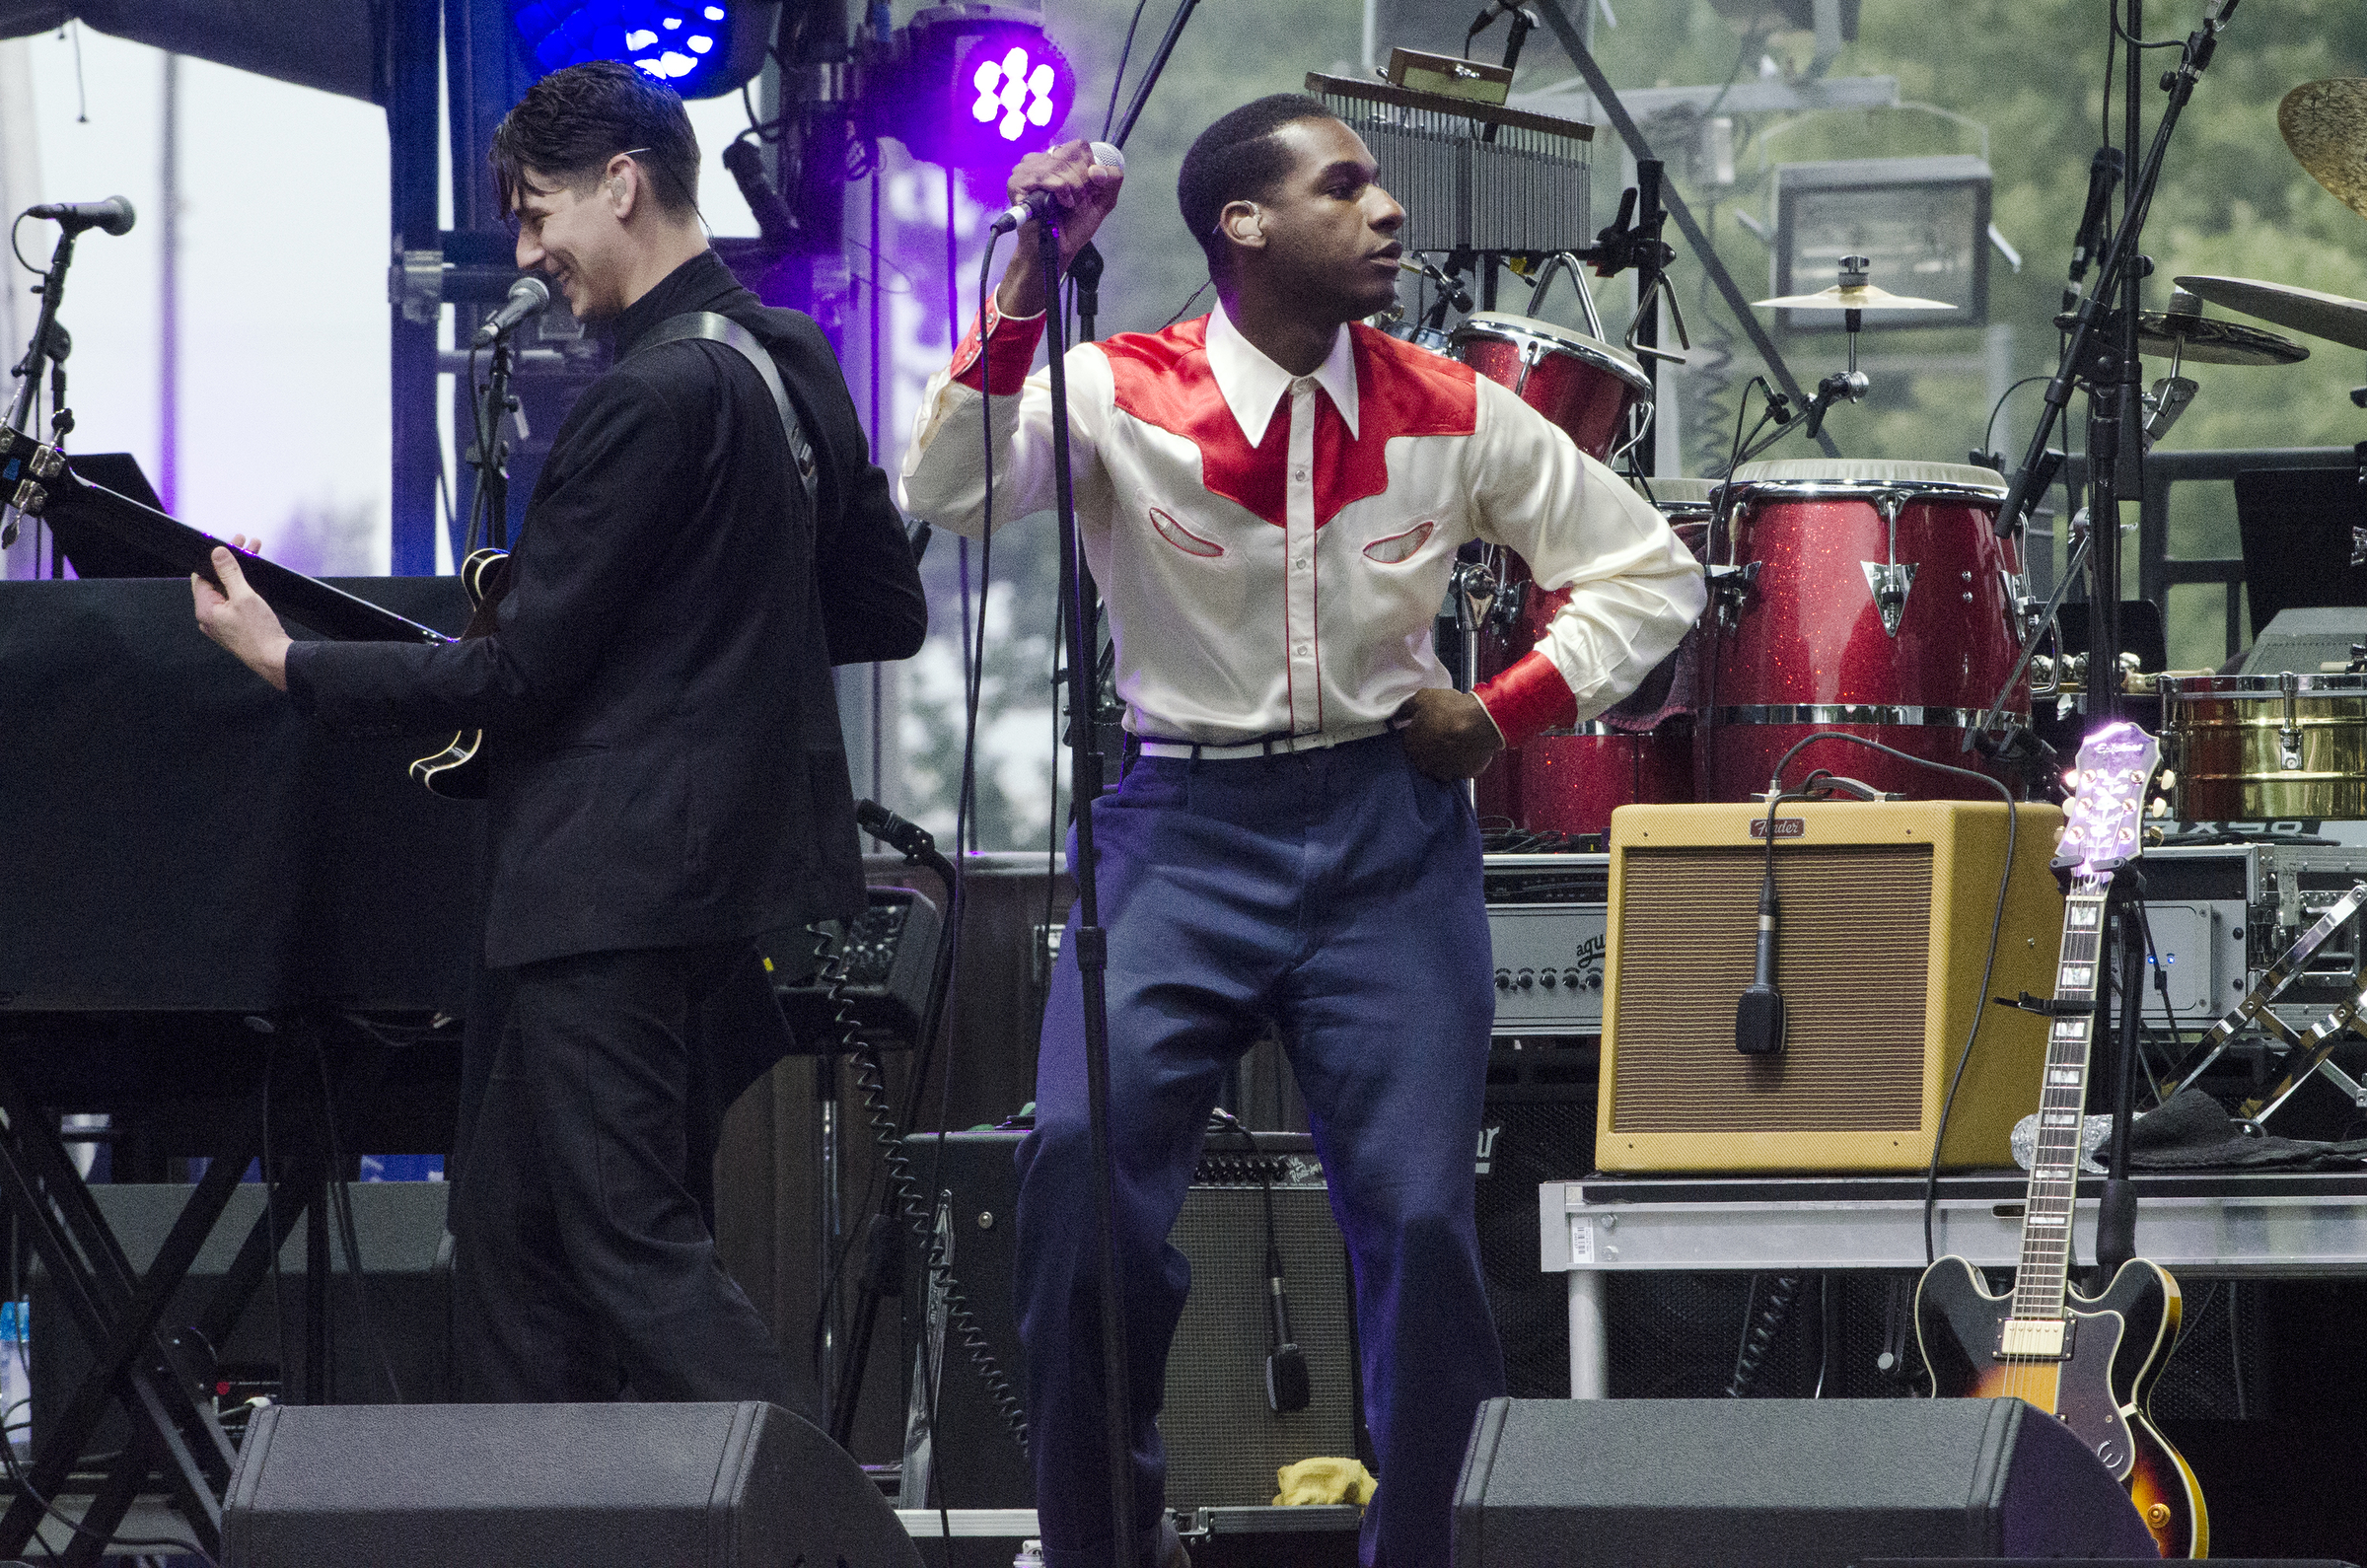 """Leon Bridges, the soul-singer named by """"Rolling Stone"""" as one of the """"10 New Artists You Need to Know,"""" performs at the Wawa Welcome America concert on the Ben Franklin Parkway on Monday, July 4th, 2016."""